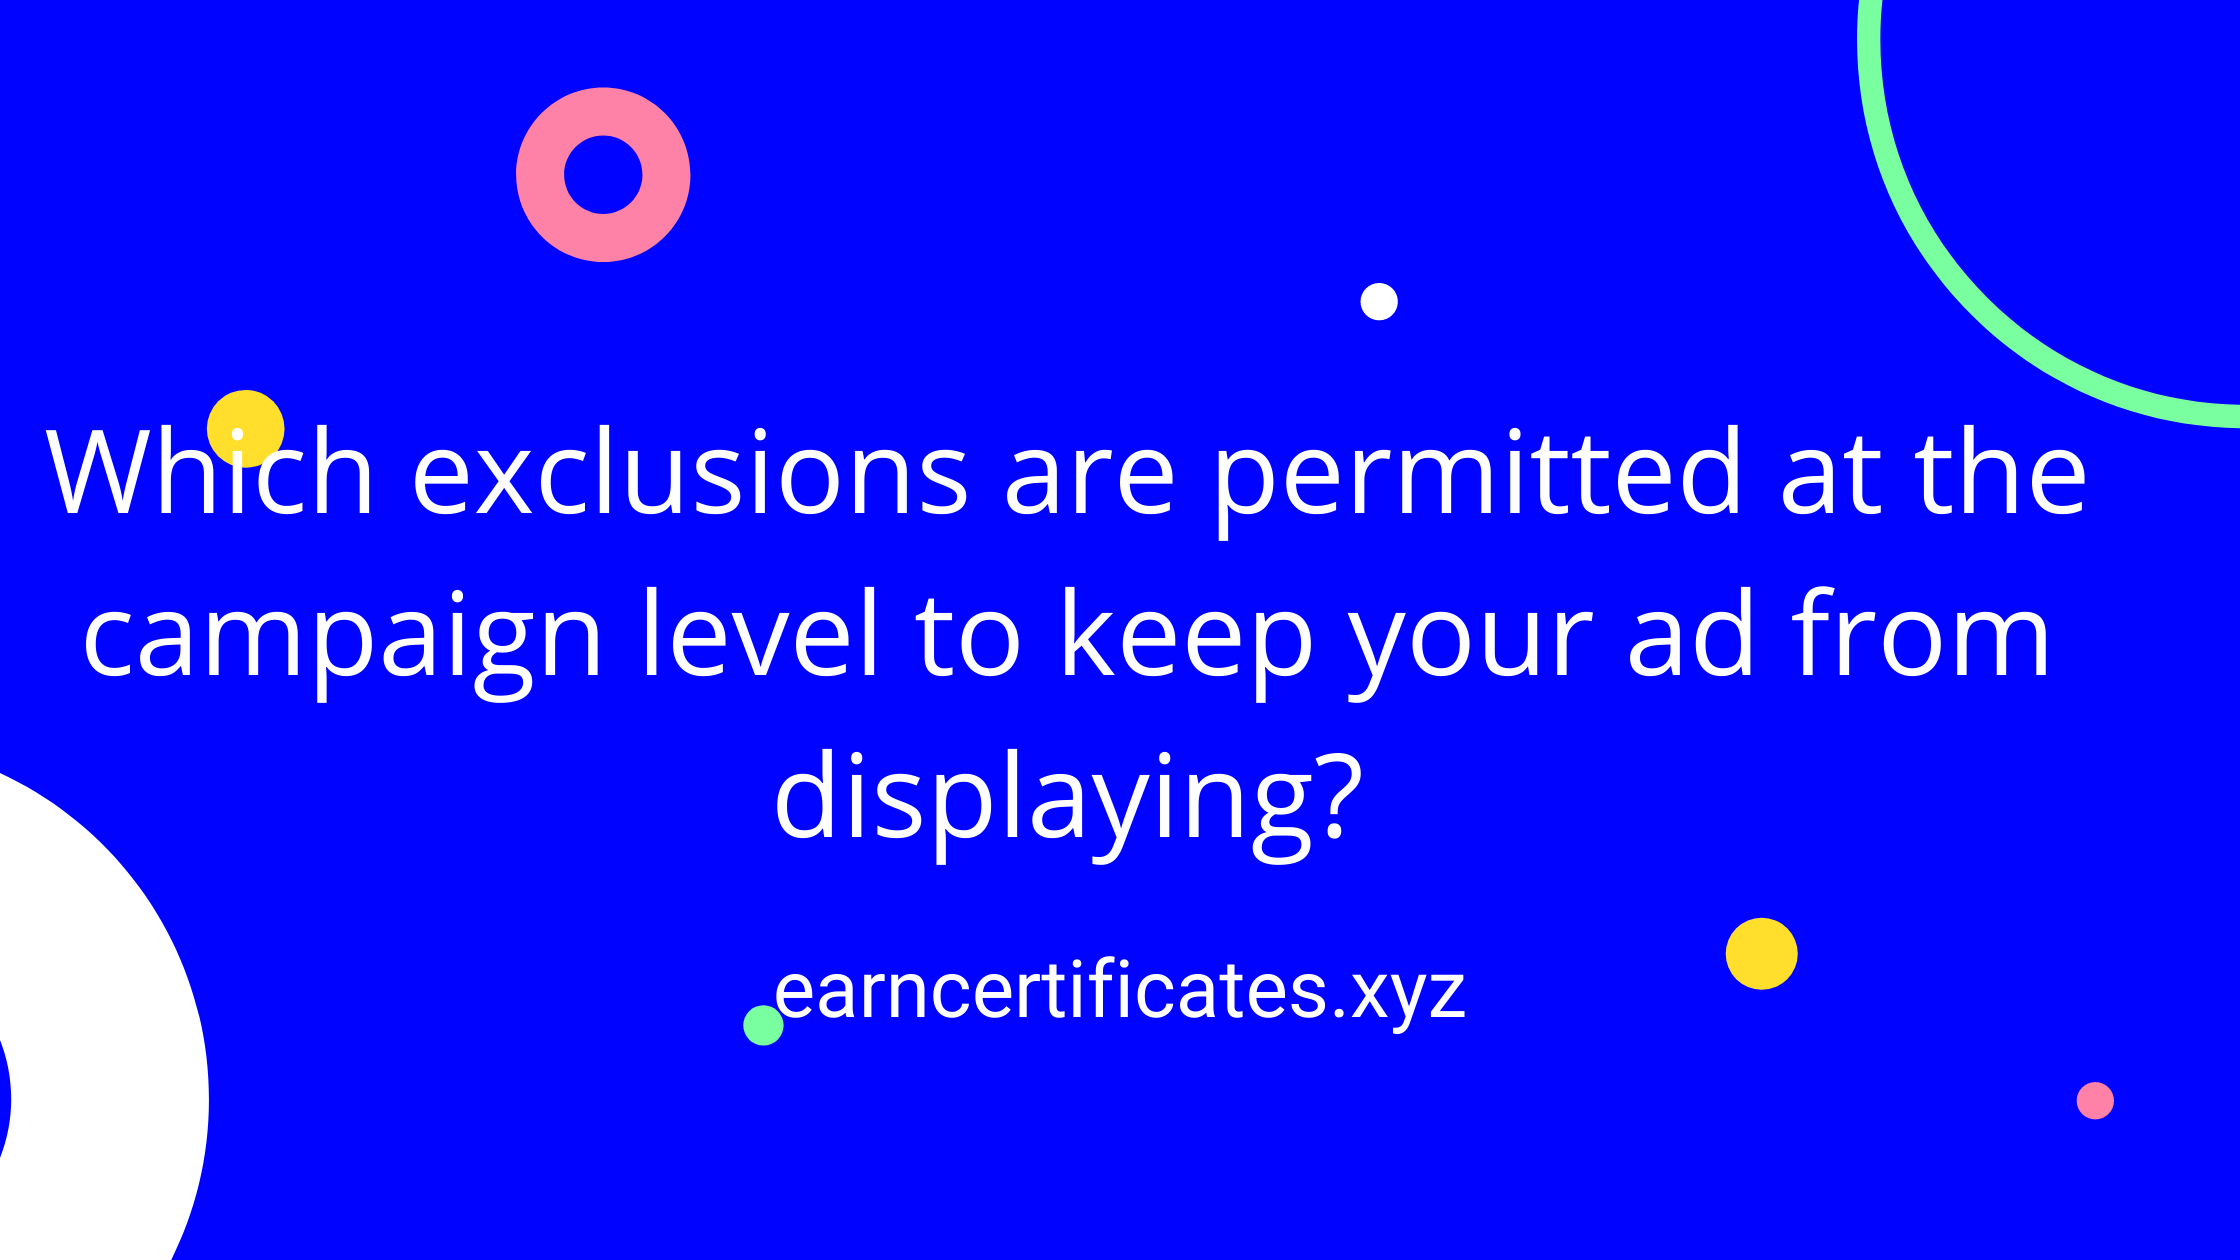 Which exclusions are permitted at the campaign level to keep your ad from displaying?